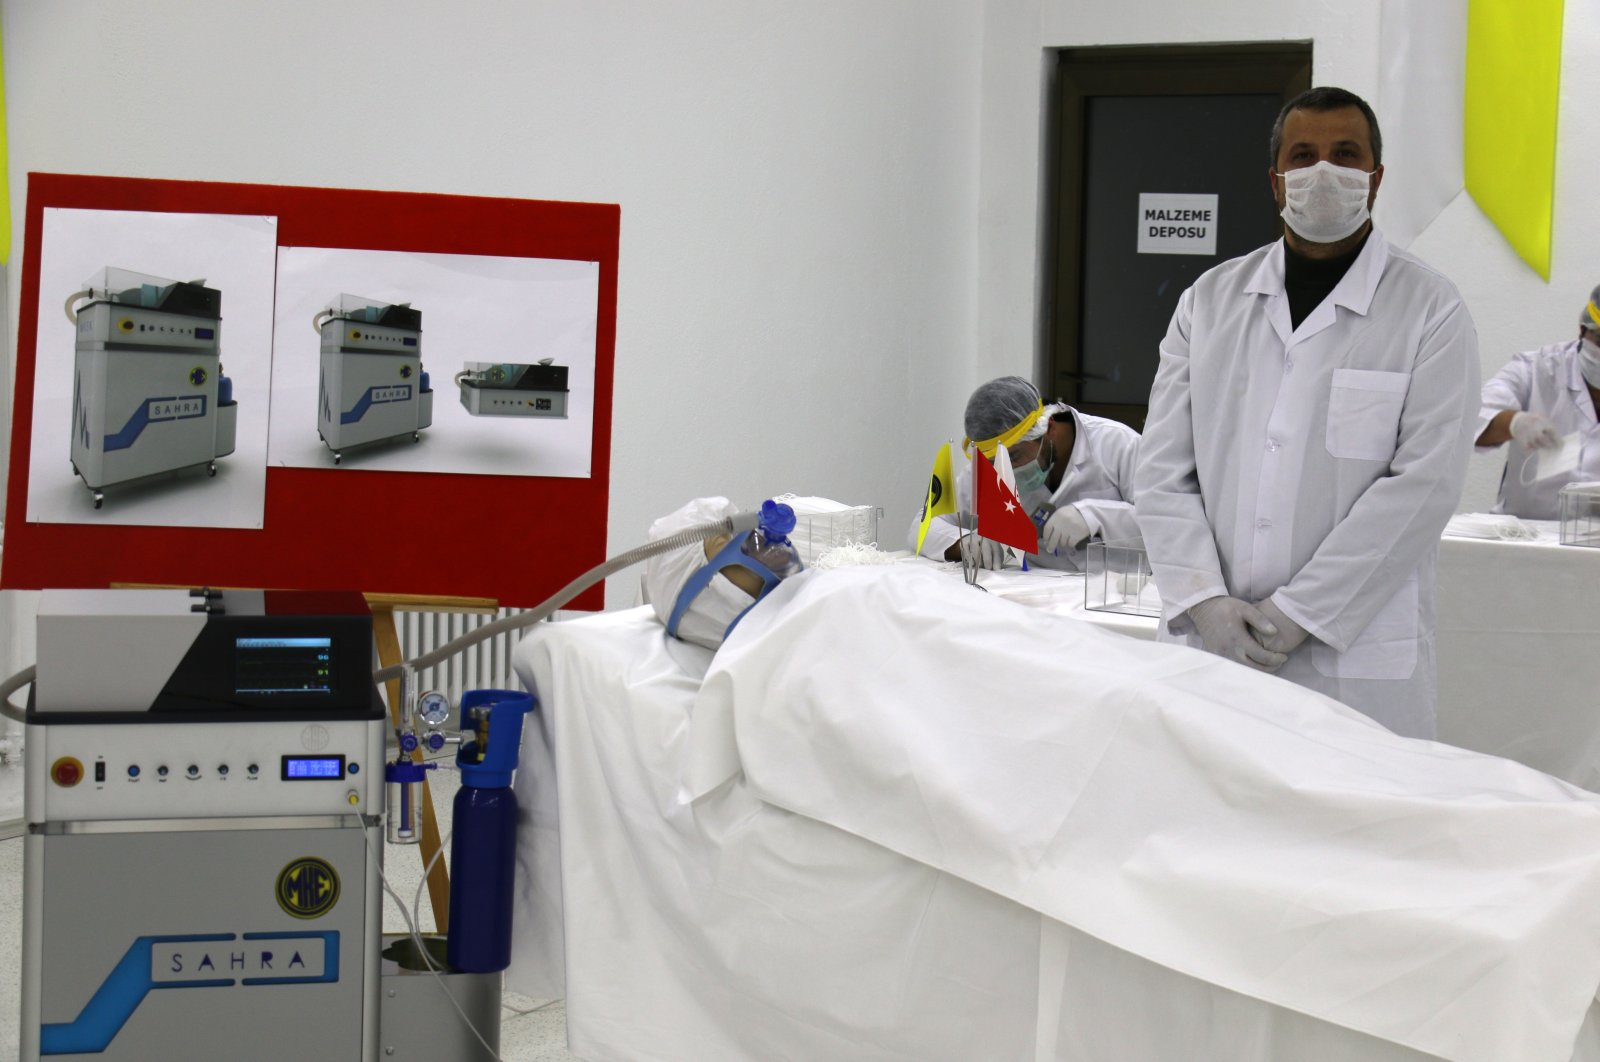 A Sahra ventilator machine is presented by the MKEK personnel, on April 24, 2020. (IHA Photo)